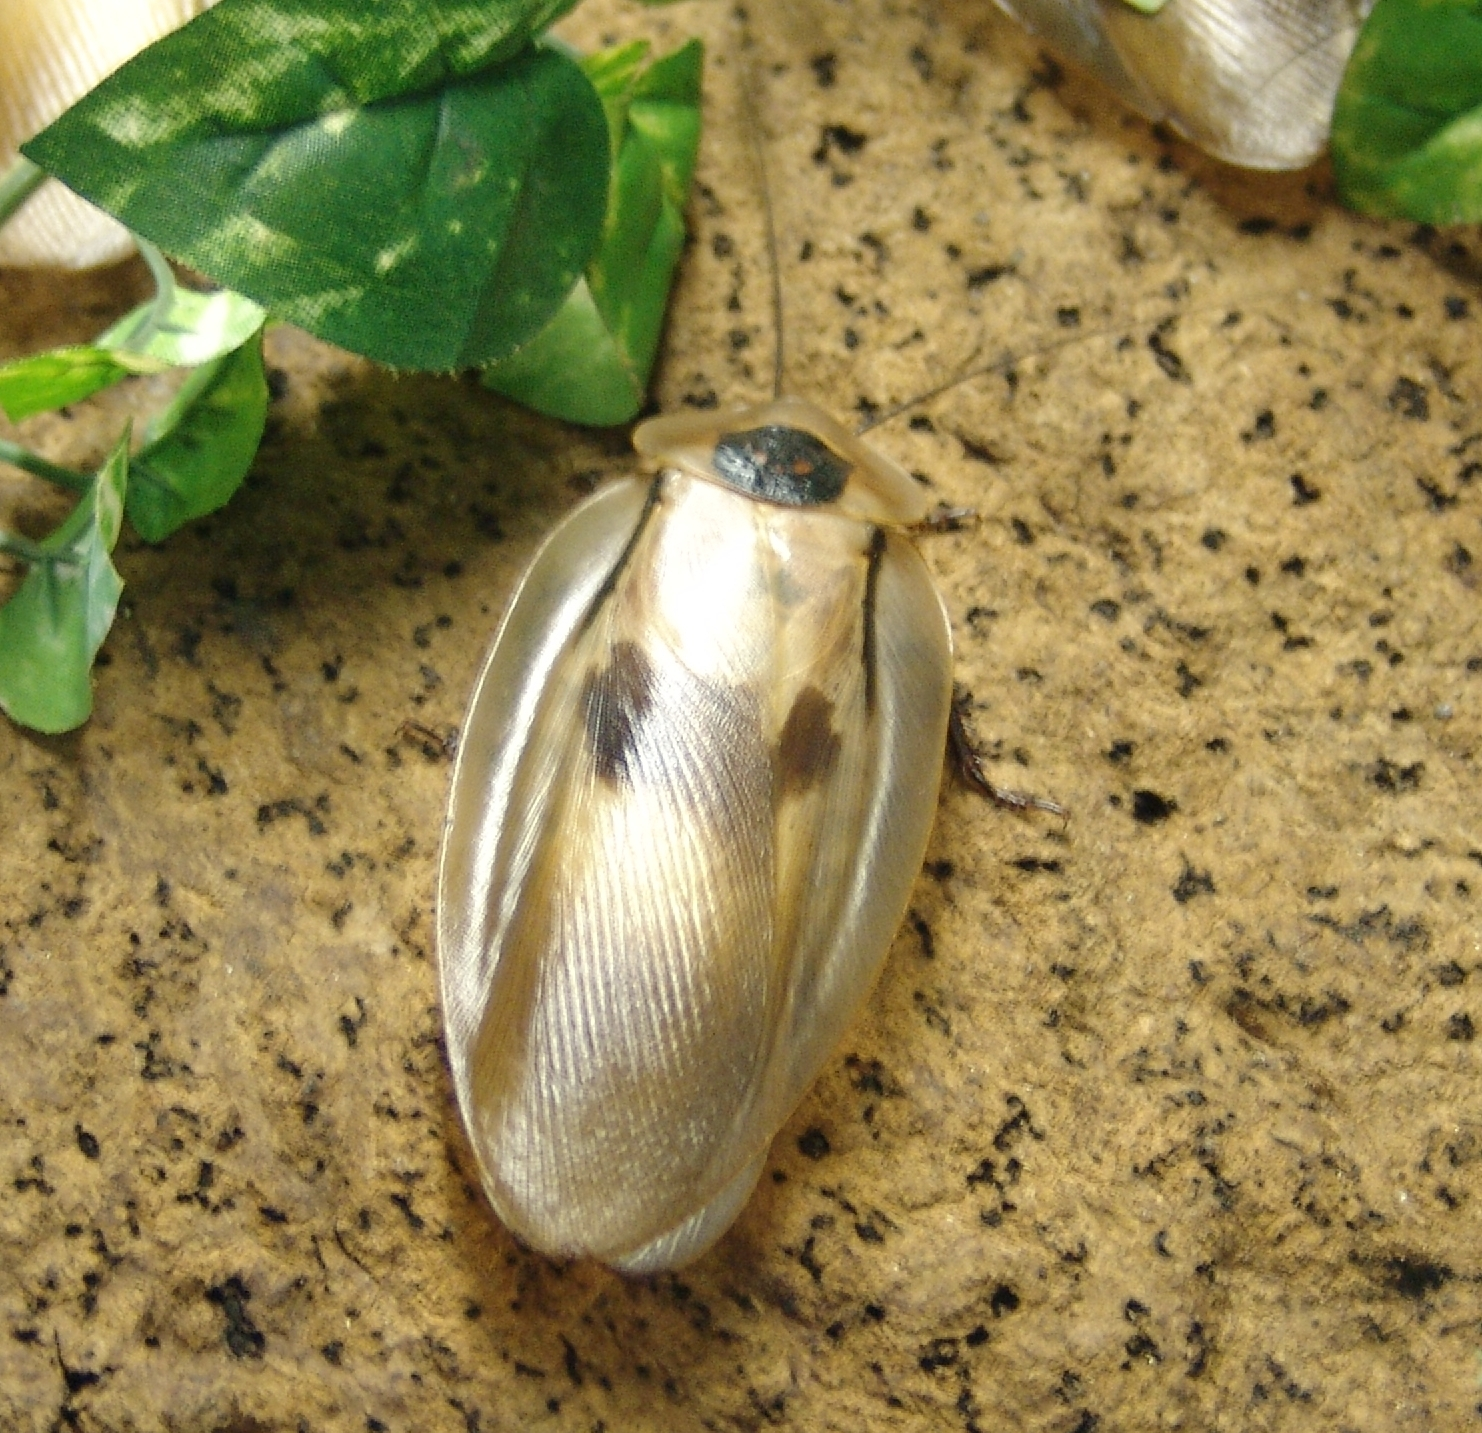 Image of Caribbean Giant Cockroach